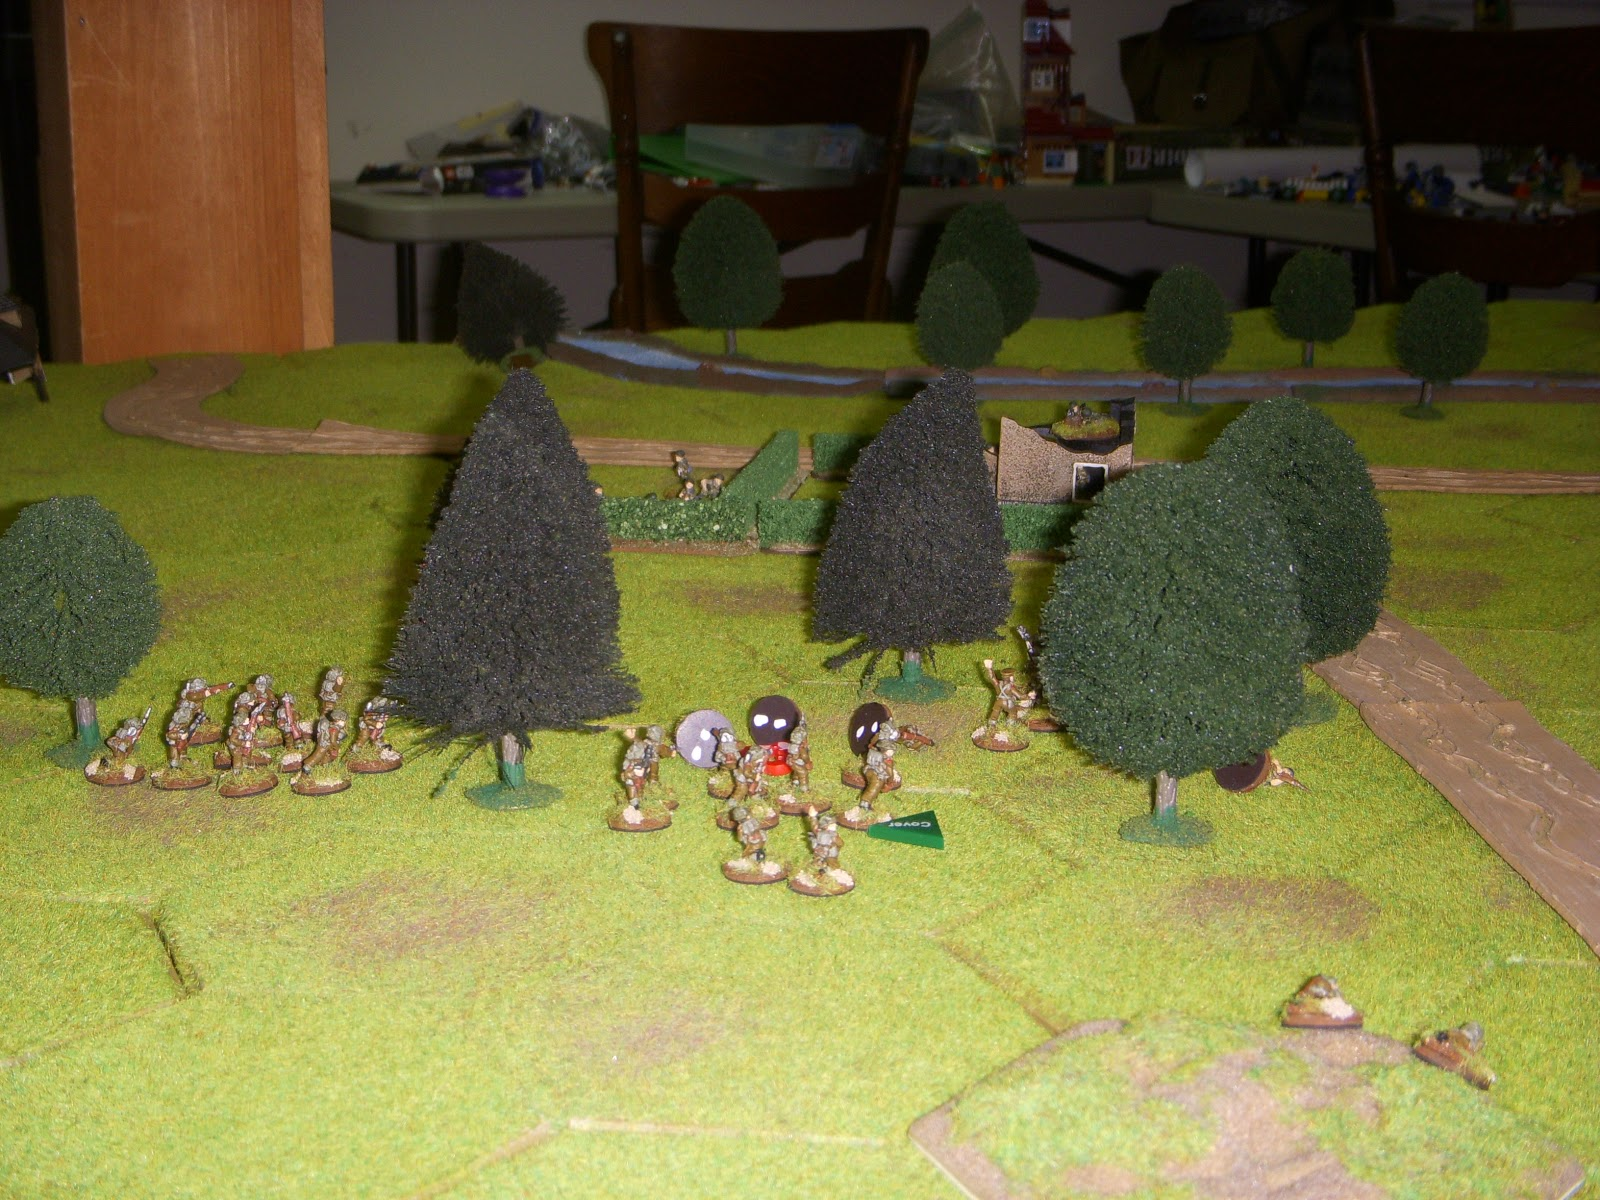 2nd Platoon ran into heavy fire by the second objective, but overcame the enemy with a combination of fire and manoeuvre.